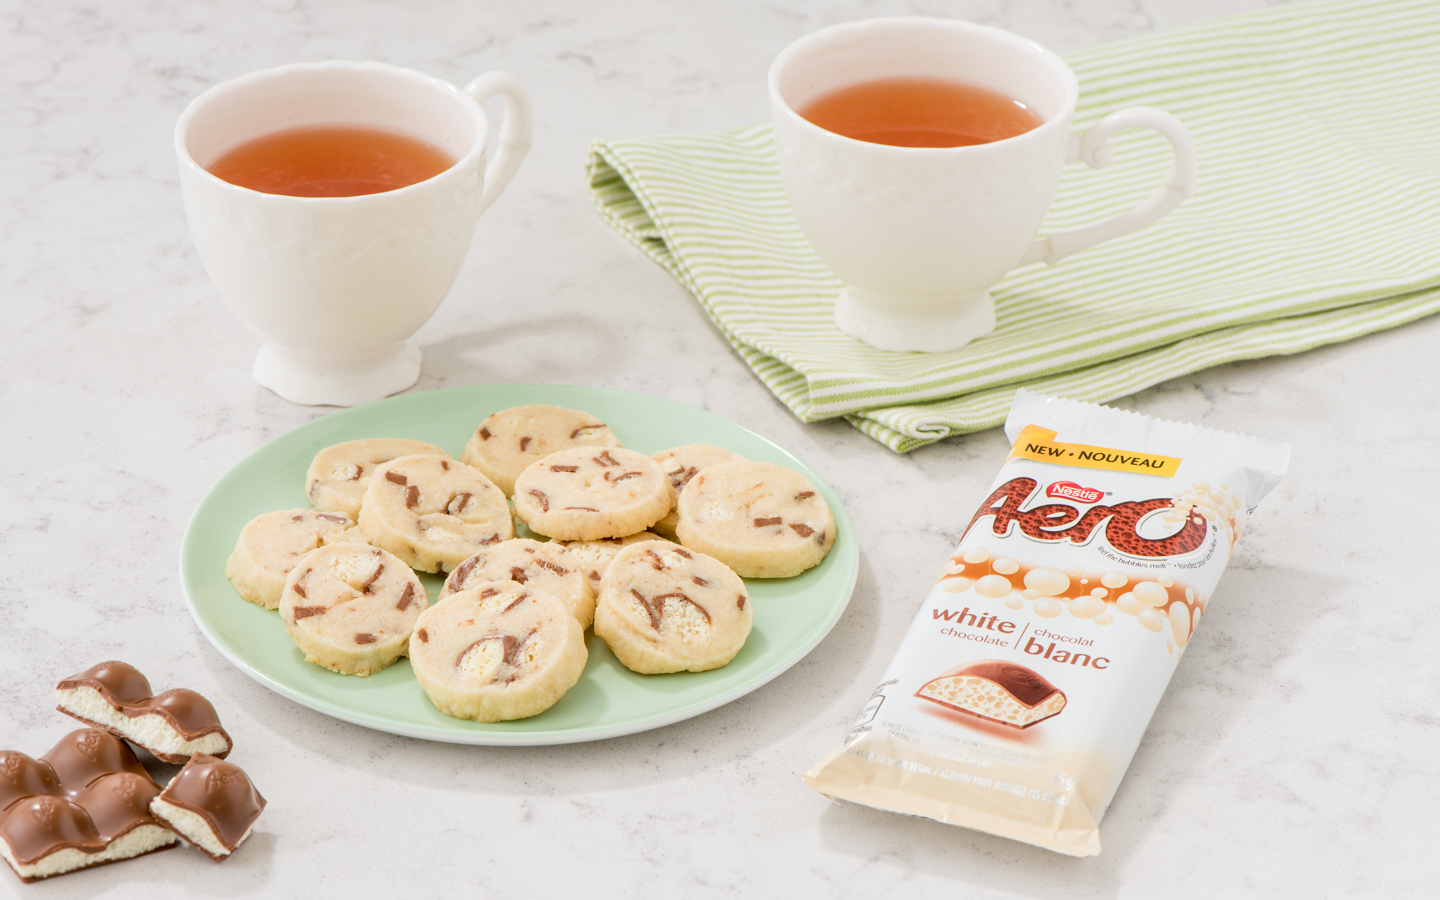 Aero White Chocolate Shortbread Madewithnestle Ca